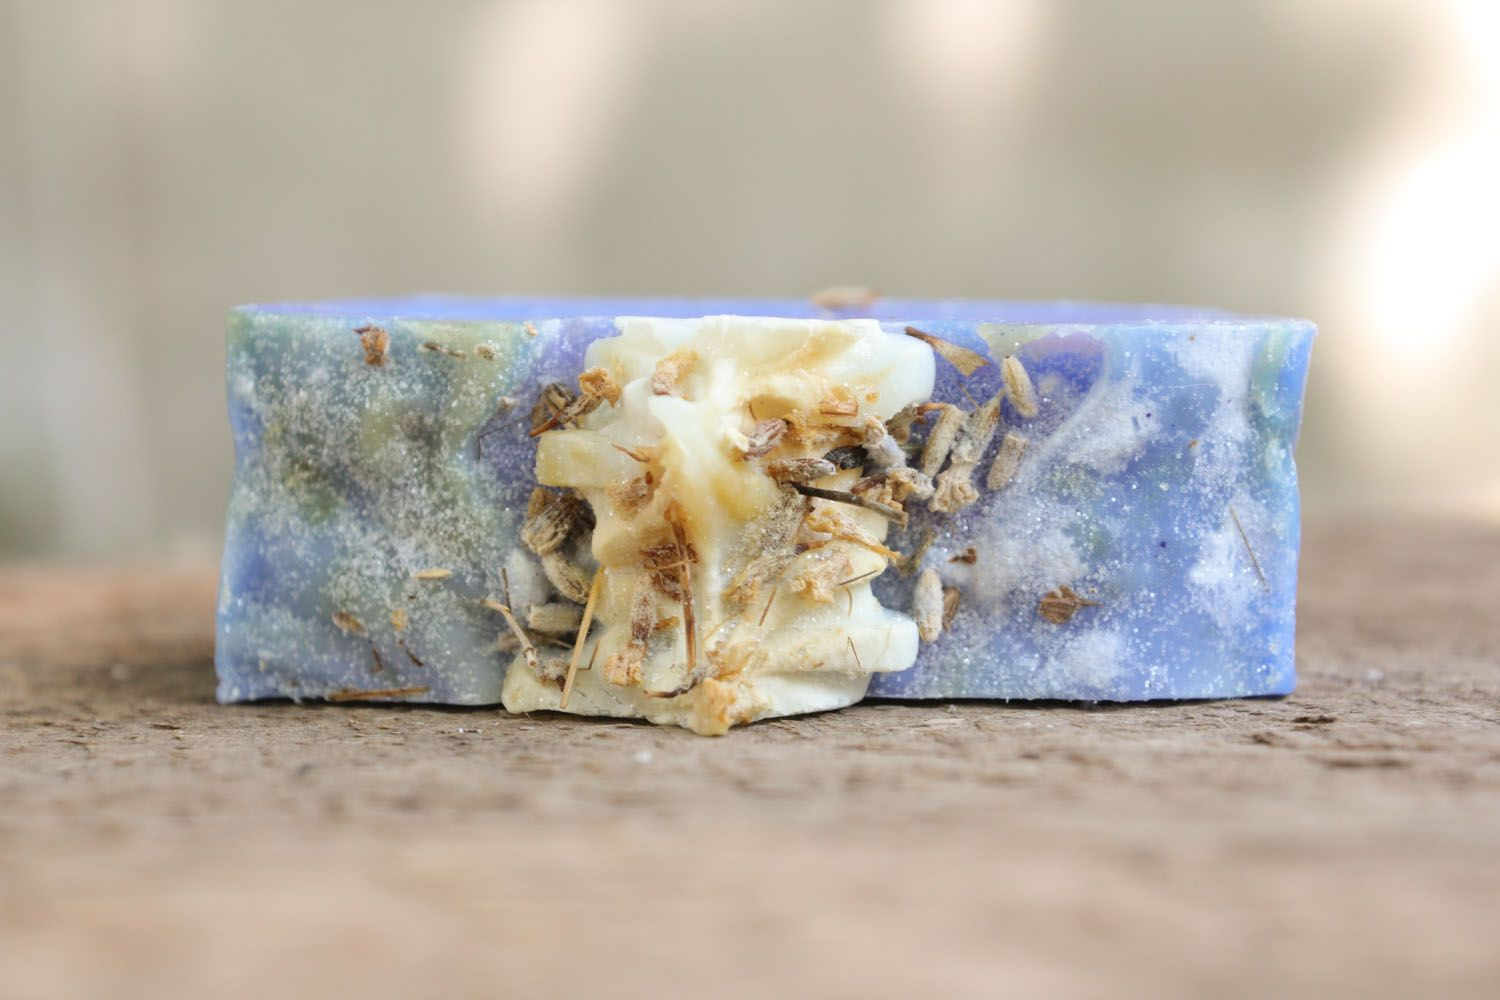 Homemade soap with lavender oil photo 3